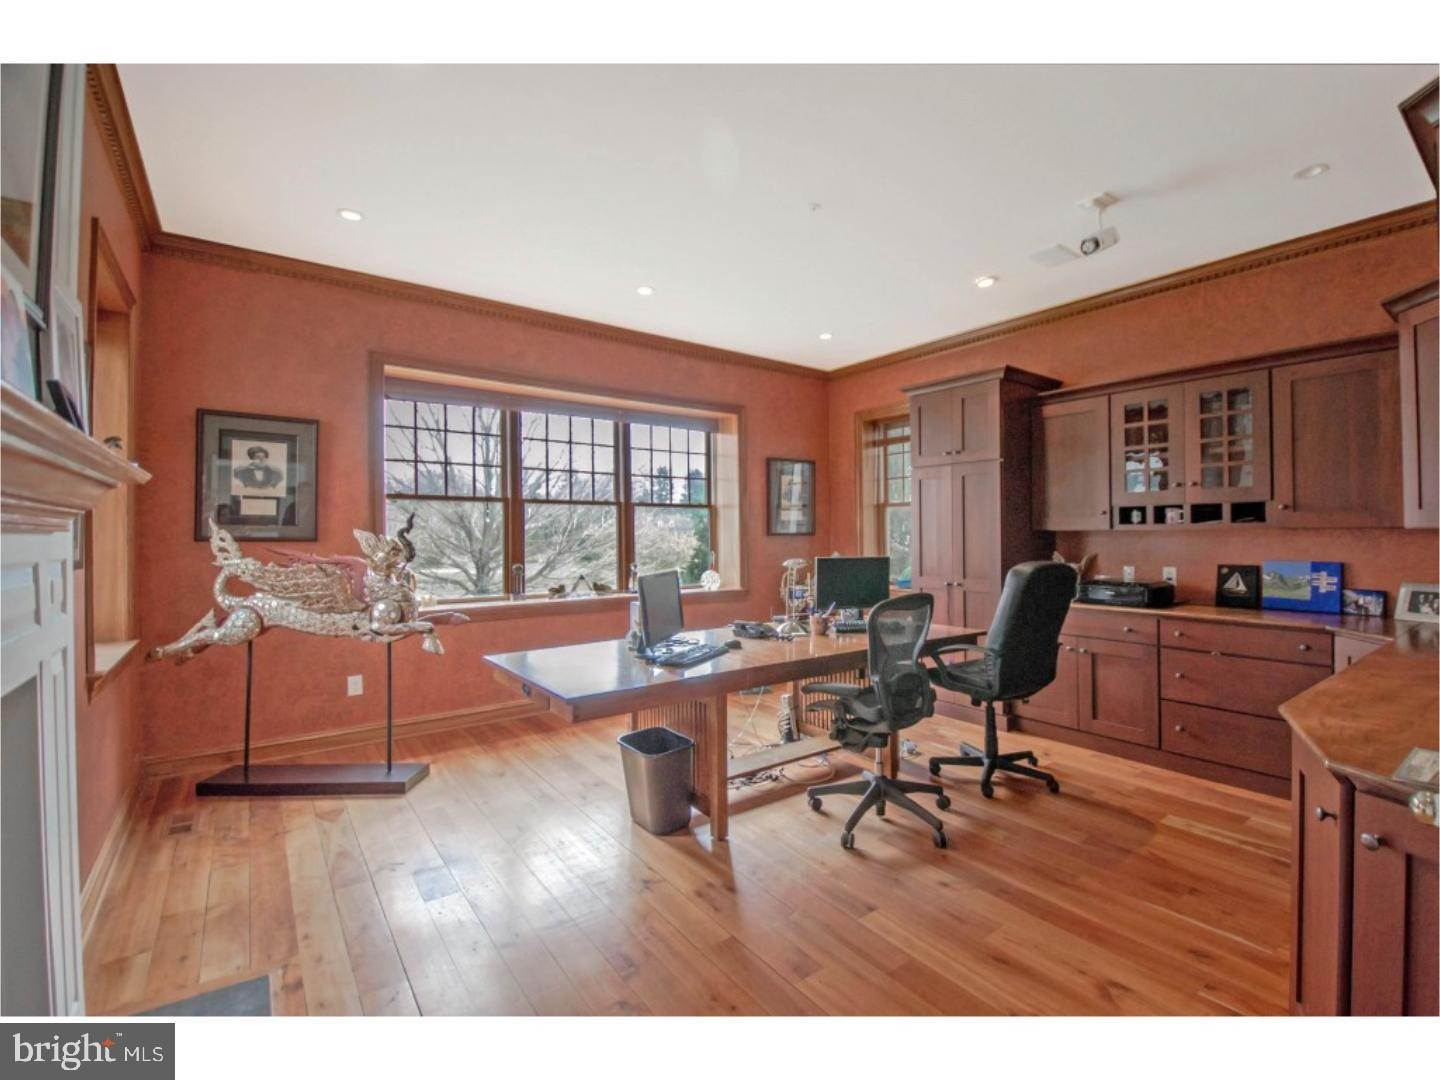 11. Detached House for Sale at 38 HARRISON Drive Newtown Square, Pennsylvania 19073 United States